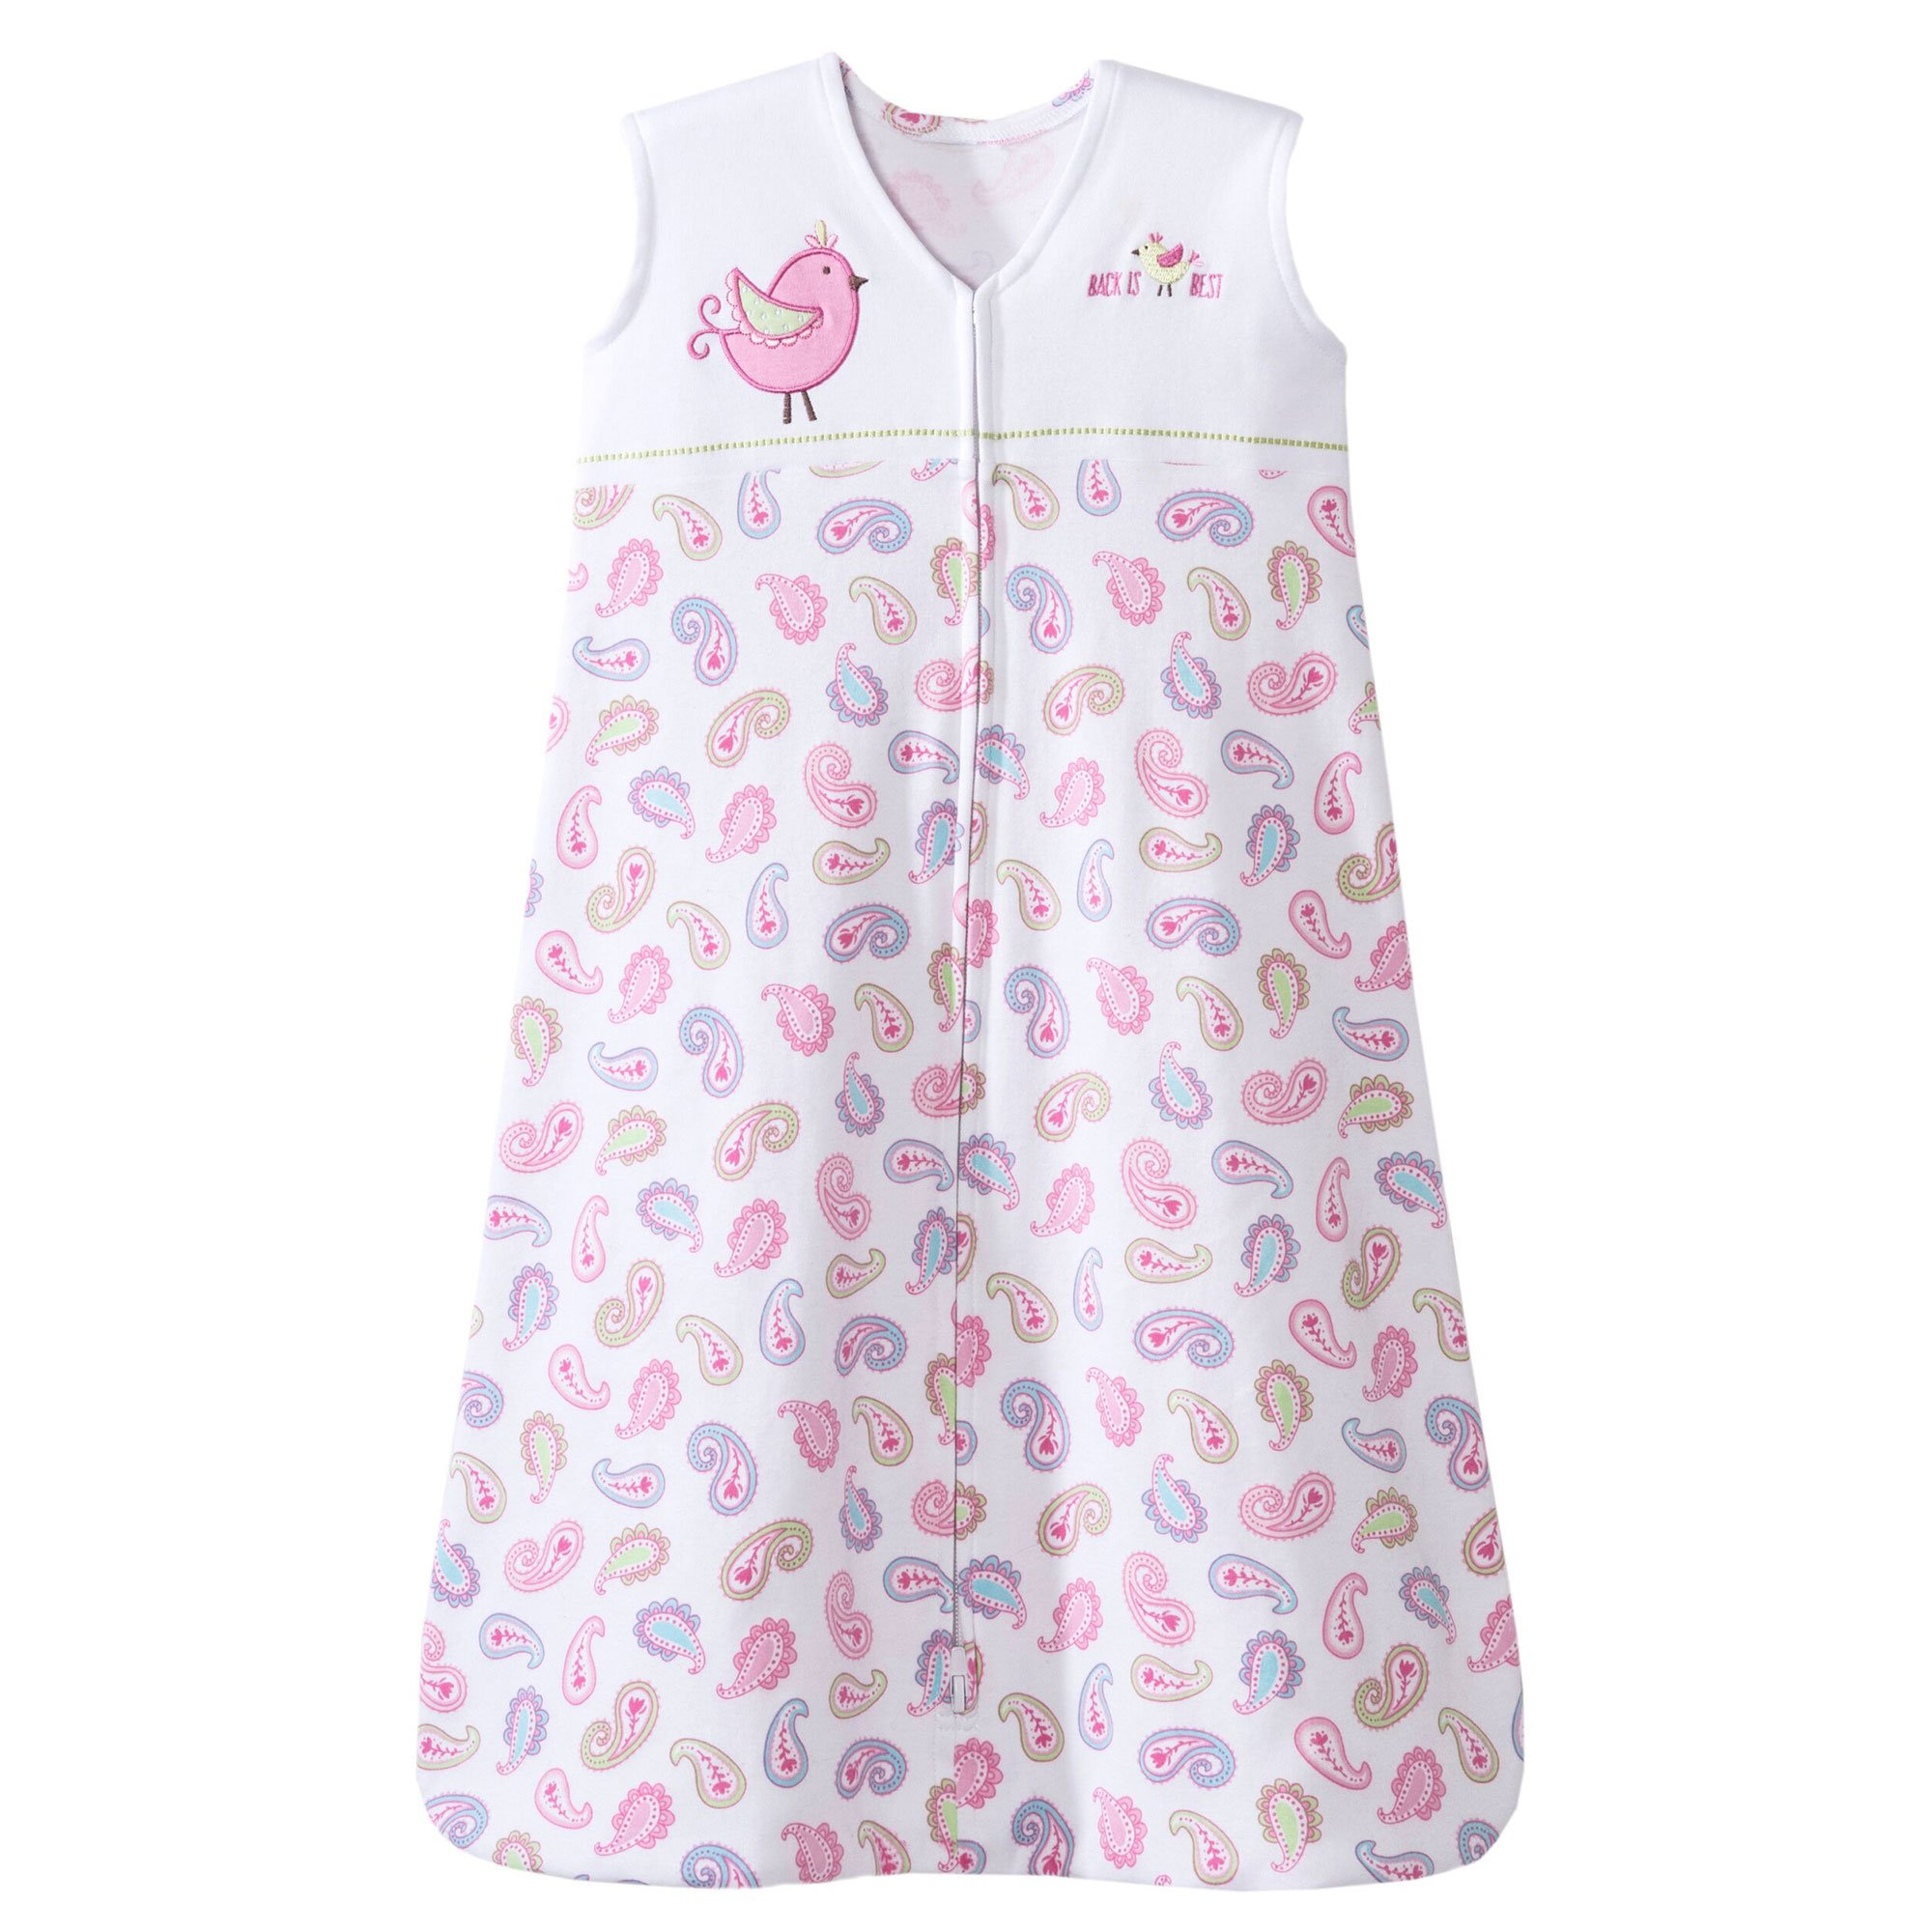 HALO Sleepsack 100% Cotton Wearable Blanket, Pink Pretty Paisley, Small by Halo (Image #1)